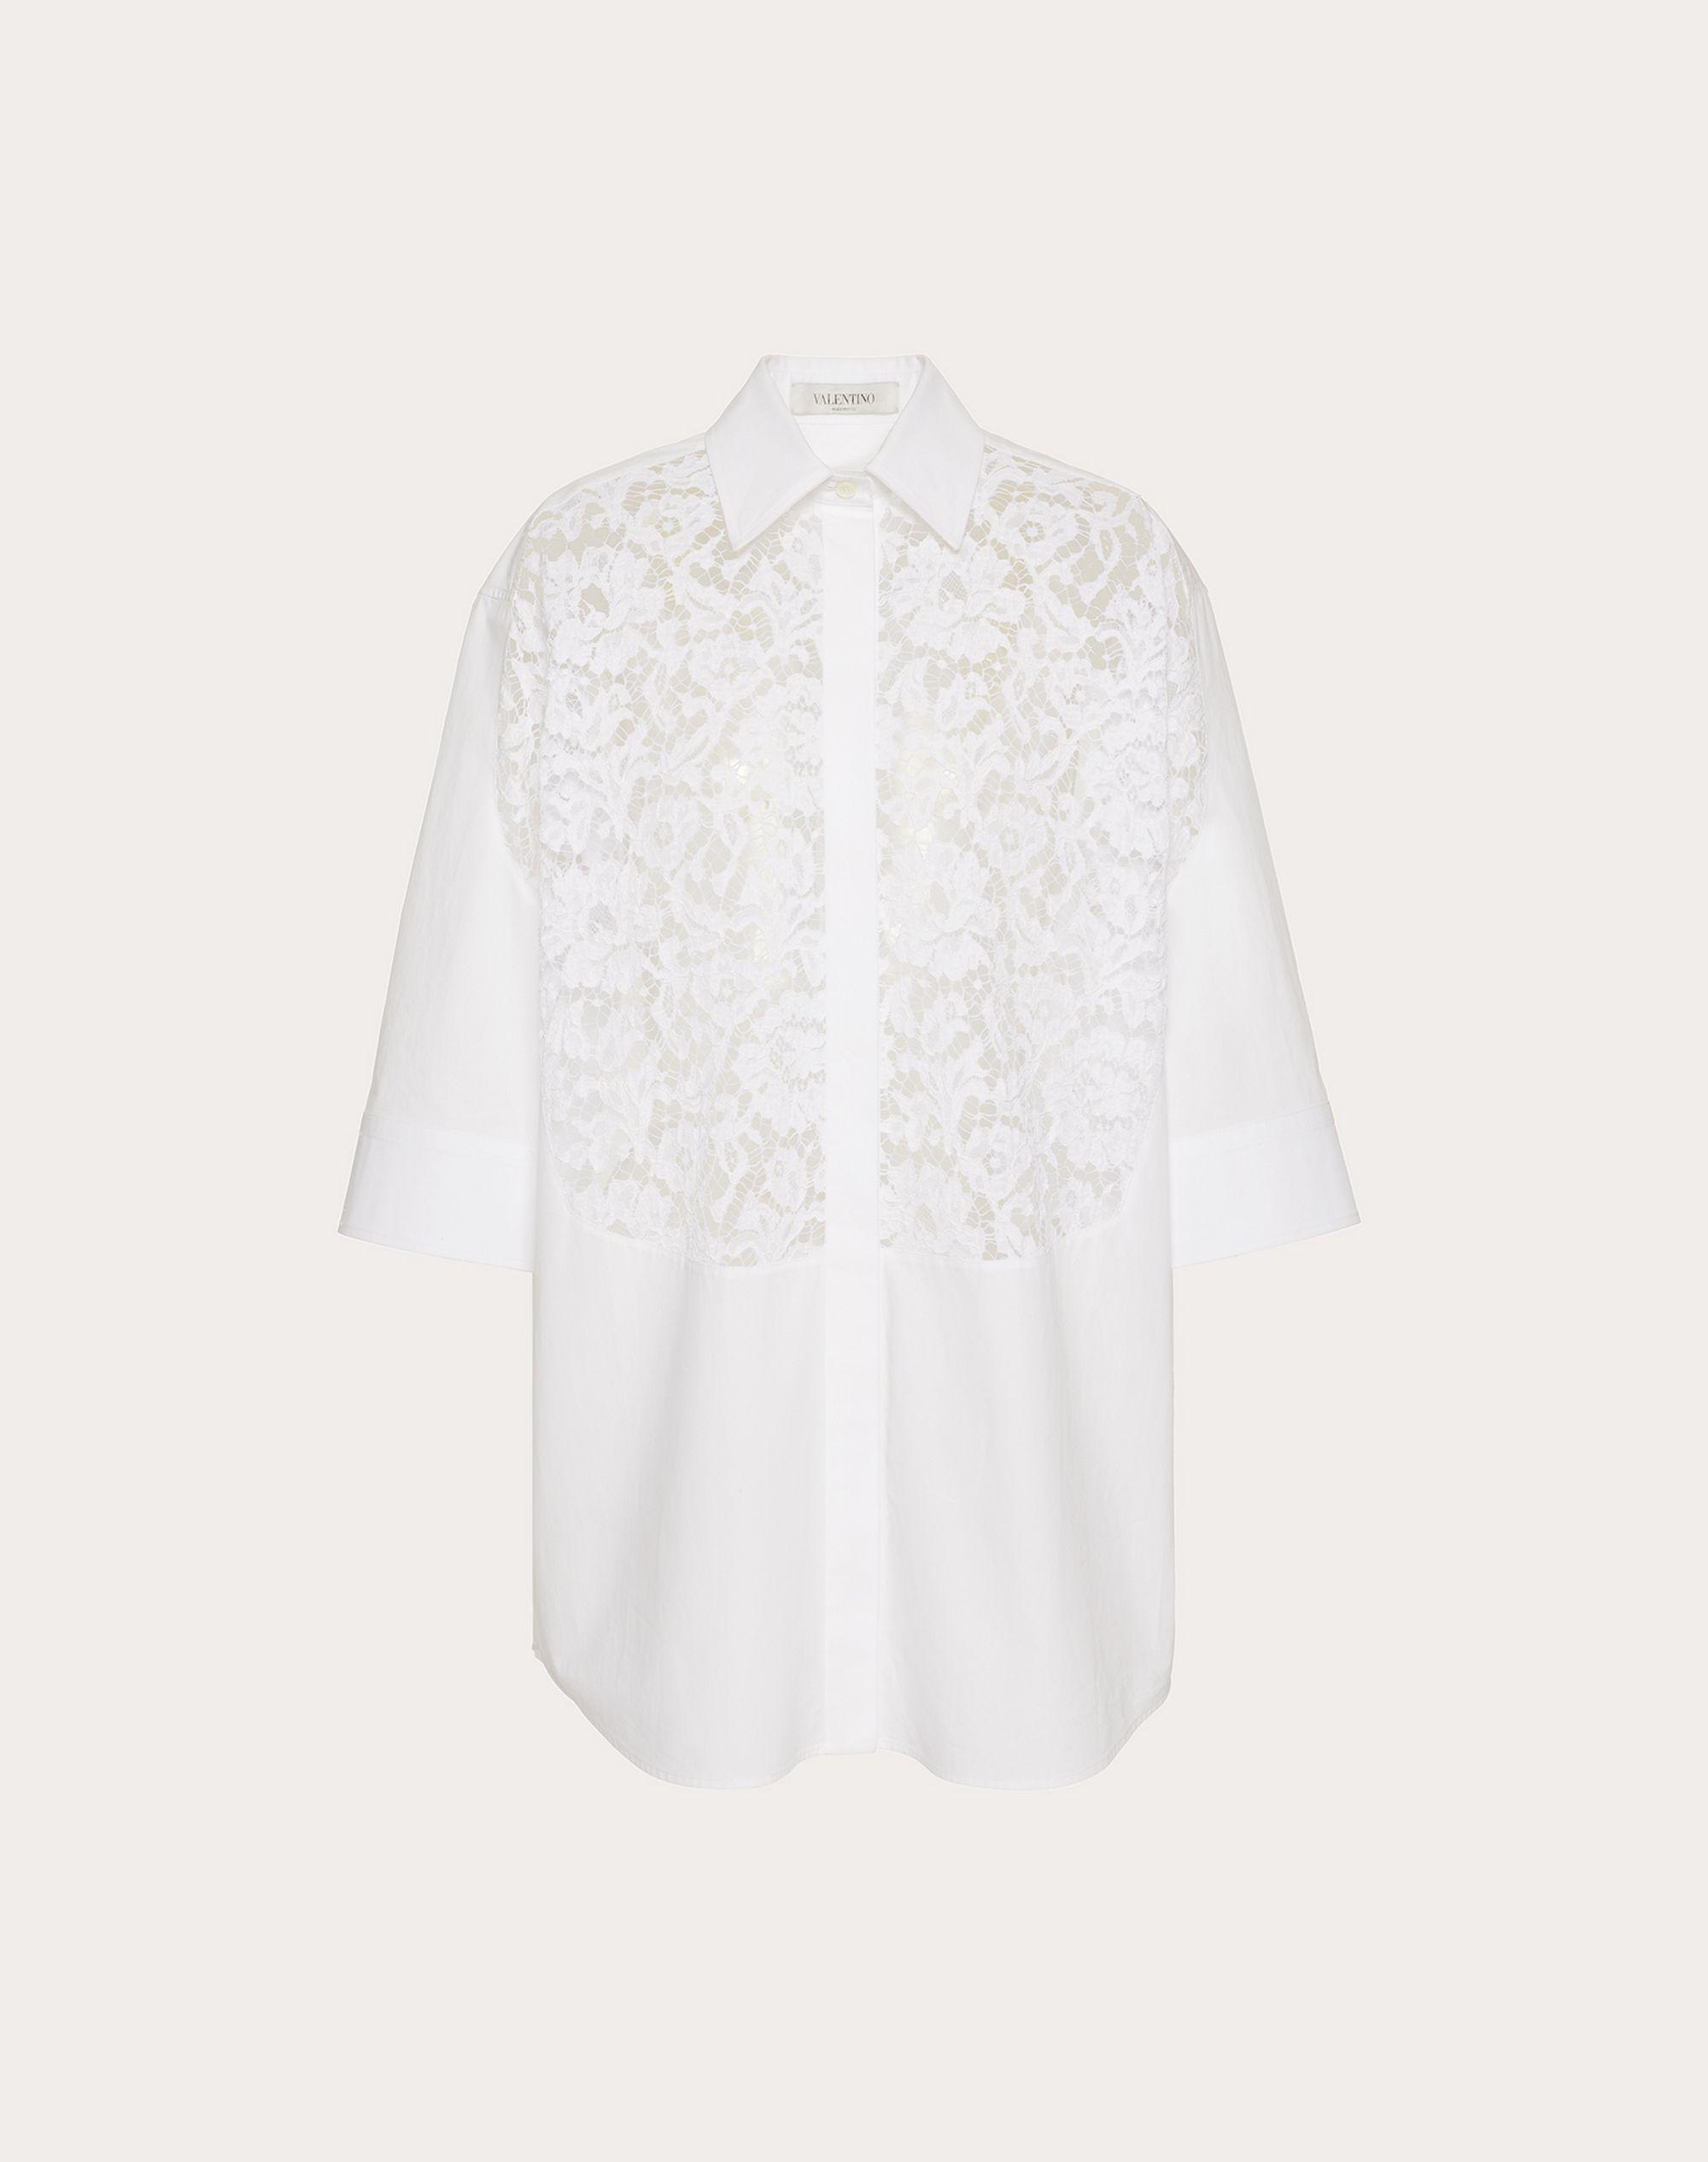 COTTON POPLIN AND HEAVY LACE SHIRT 4